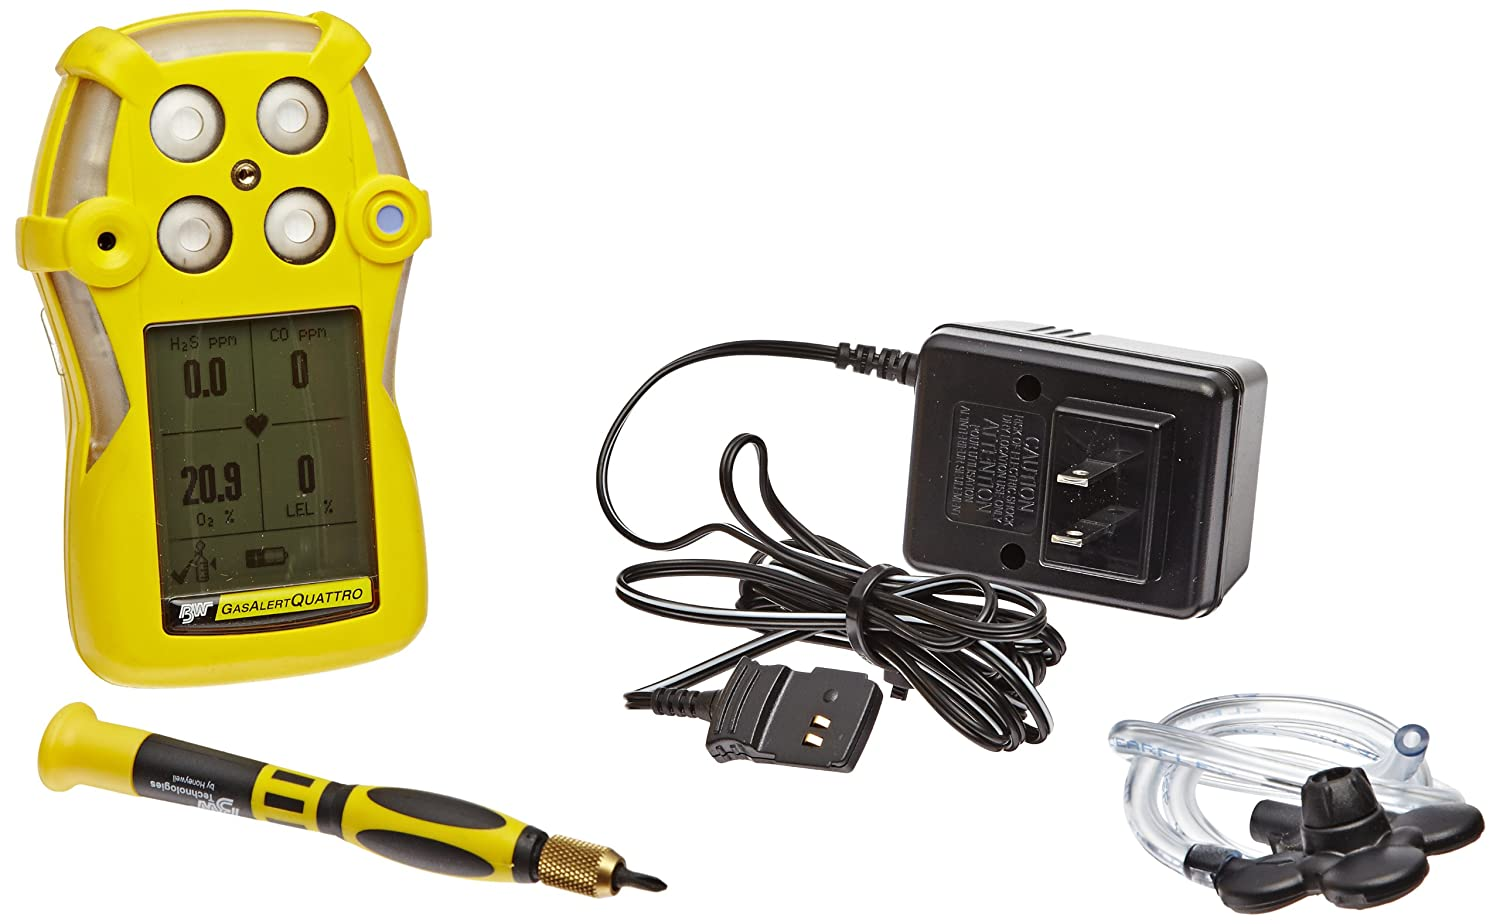 BW Technologies QT-XWHM-R-Y-NA GasAlertQuattro 4-Gas Detector with Rechargeable Battery, Combustible, O2, H2S and CO, Yellow